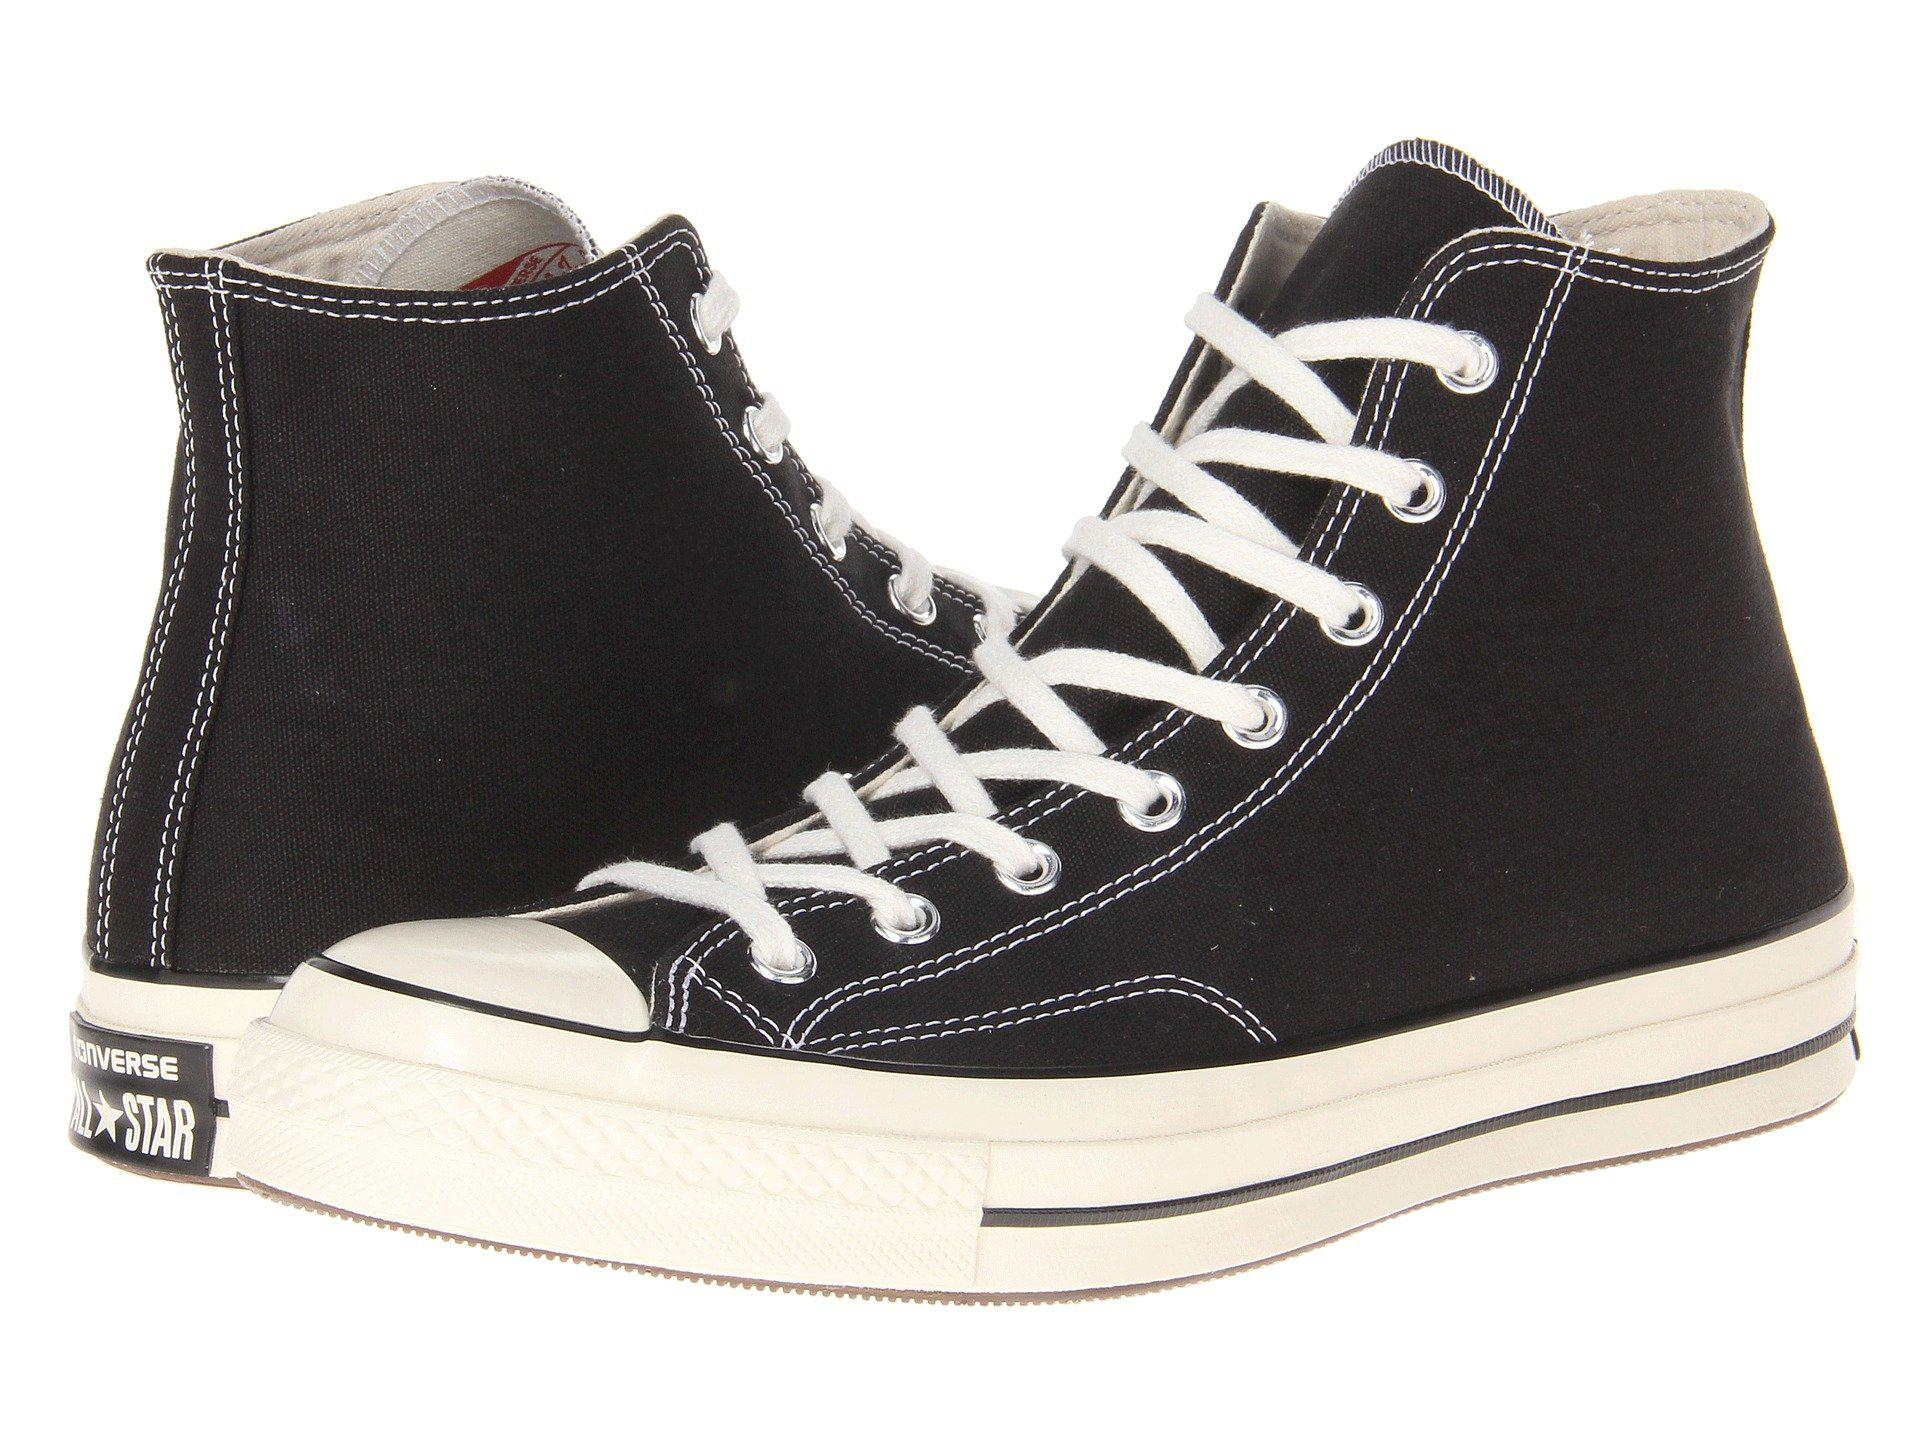 Lyst - Converse Chuck 70 Canvas High-top Sneakers in Black for Men 5d521cb0a